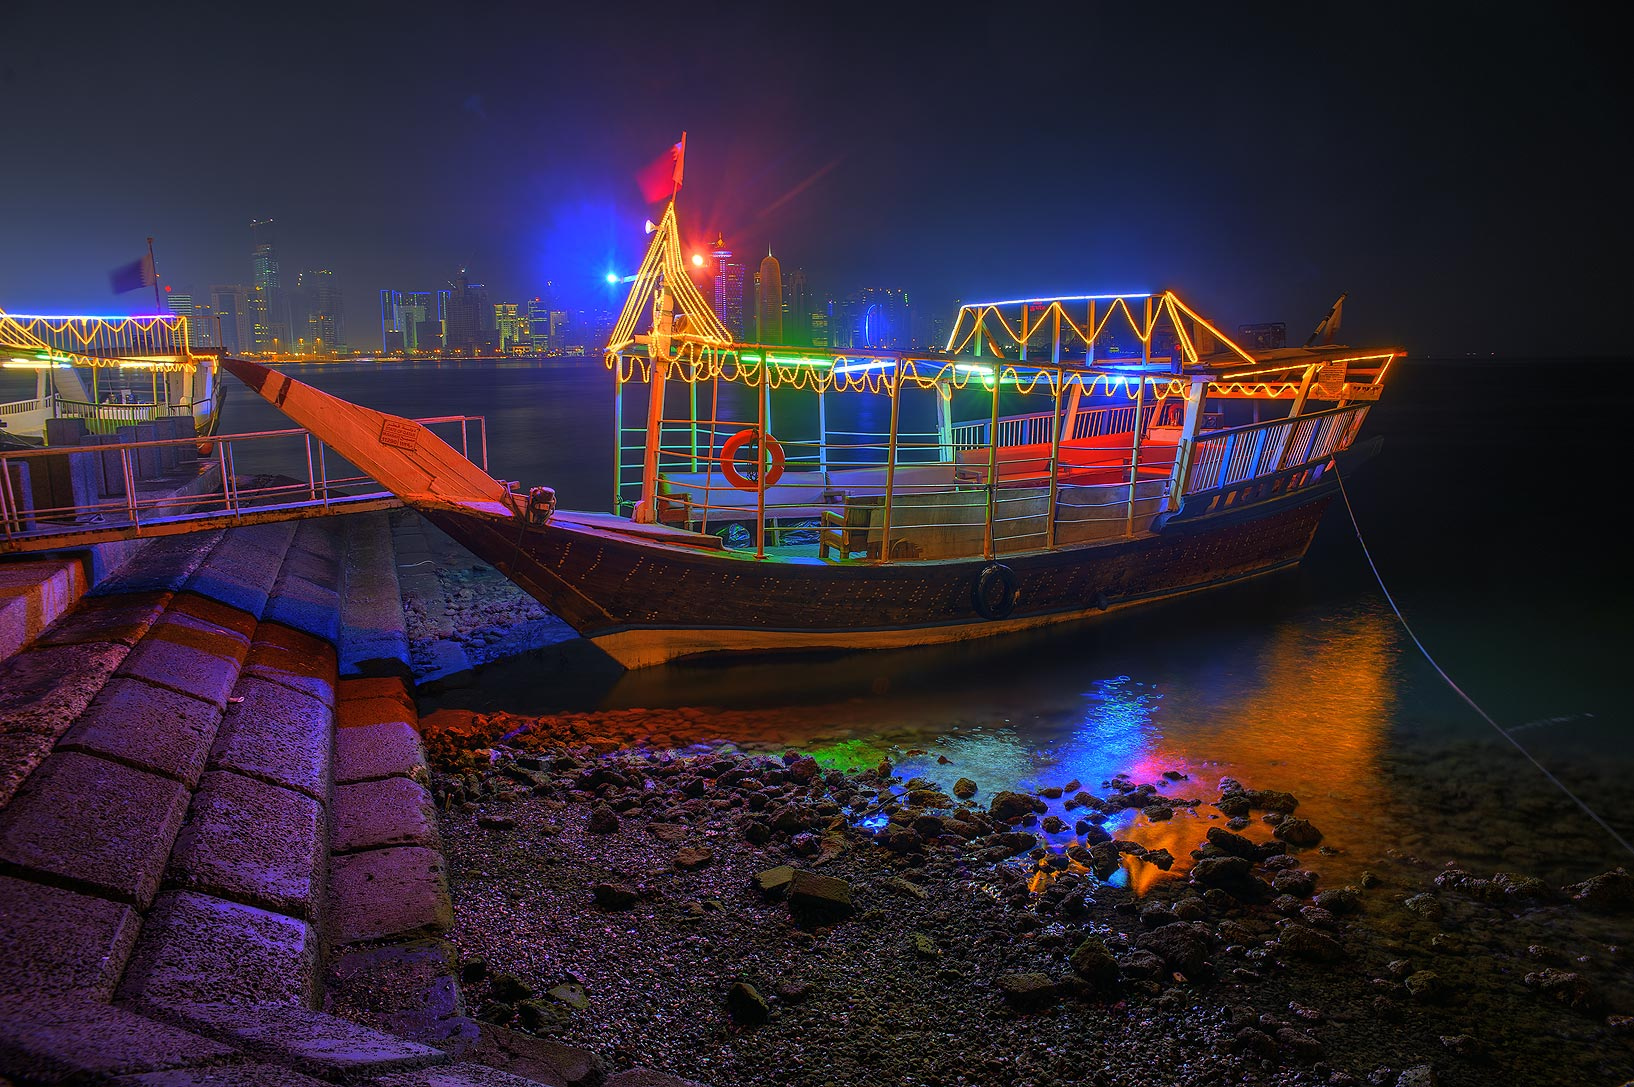 Illuminated dhow boat at Corniche promenade at evening. Doha, Qatar